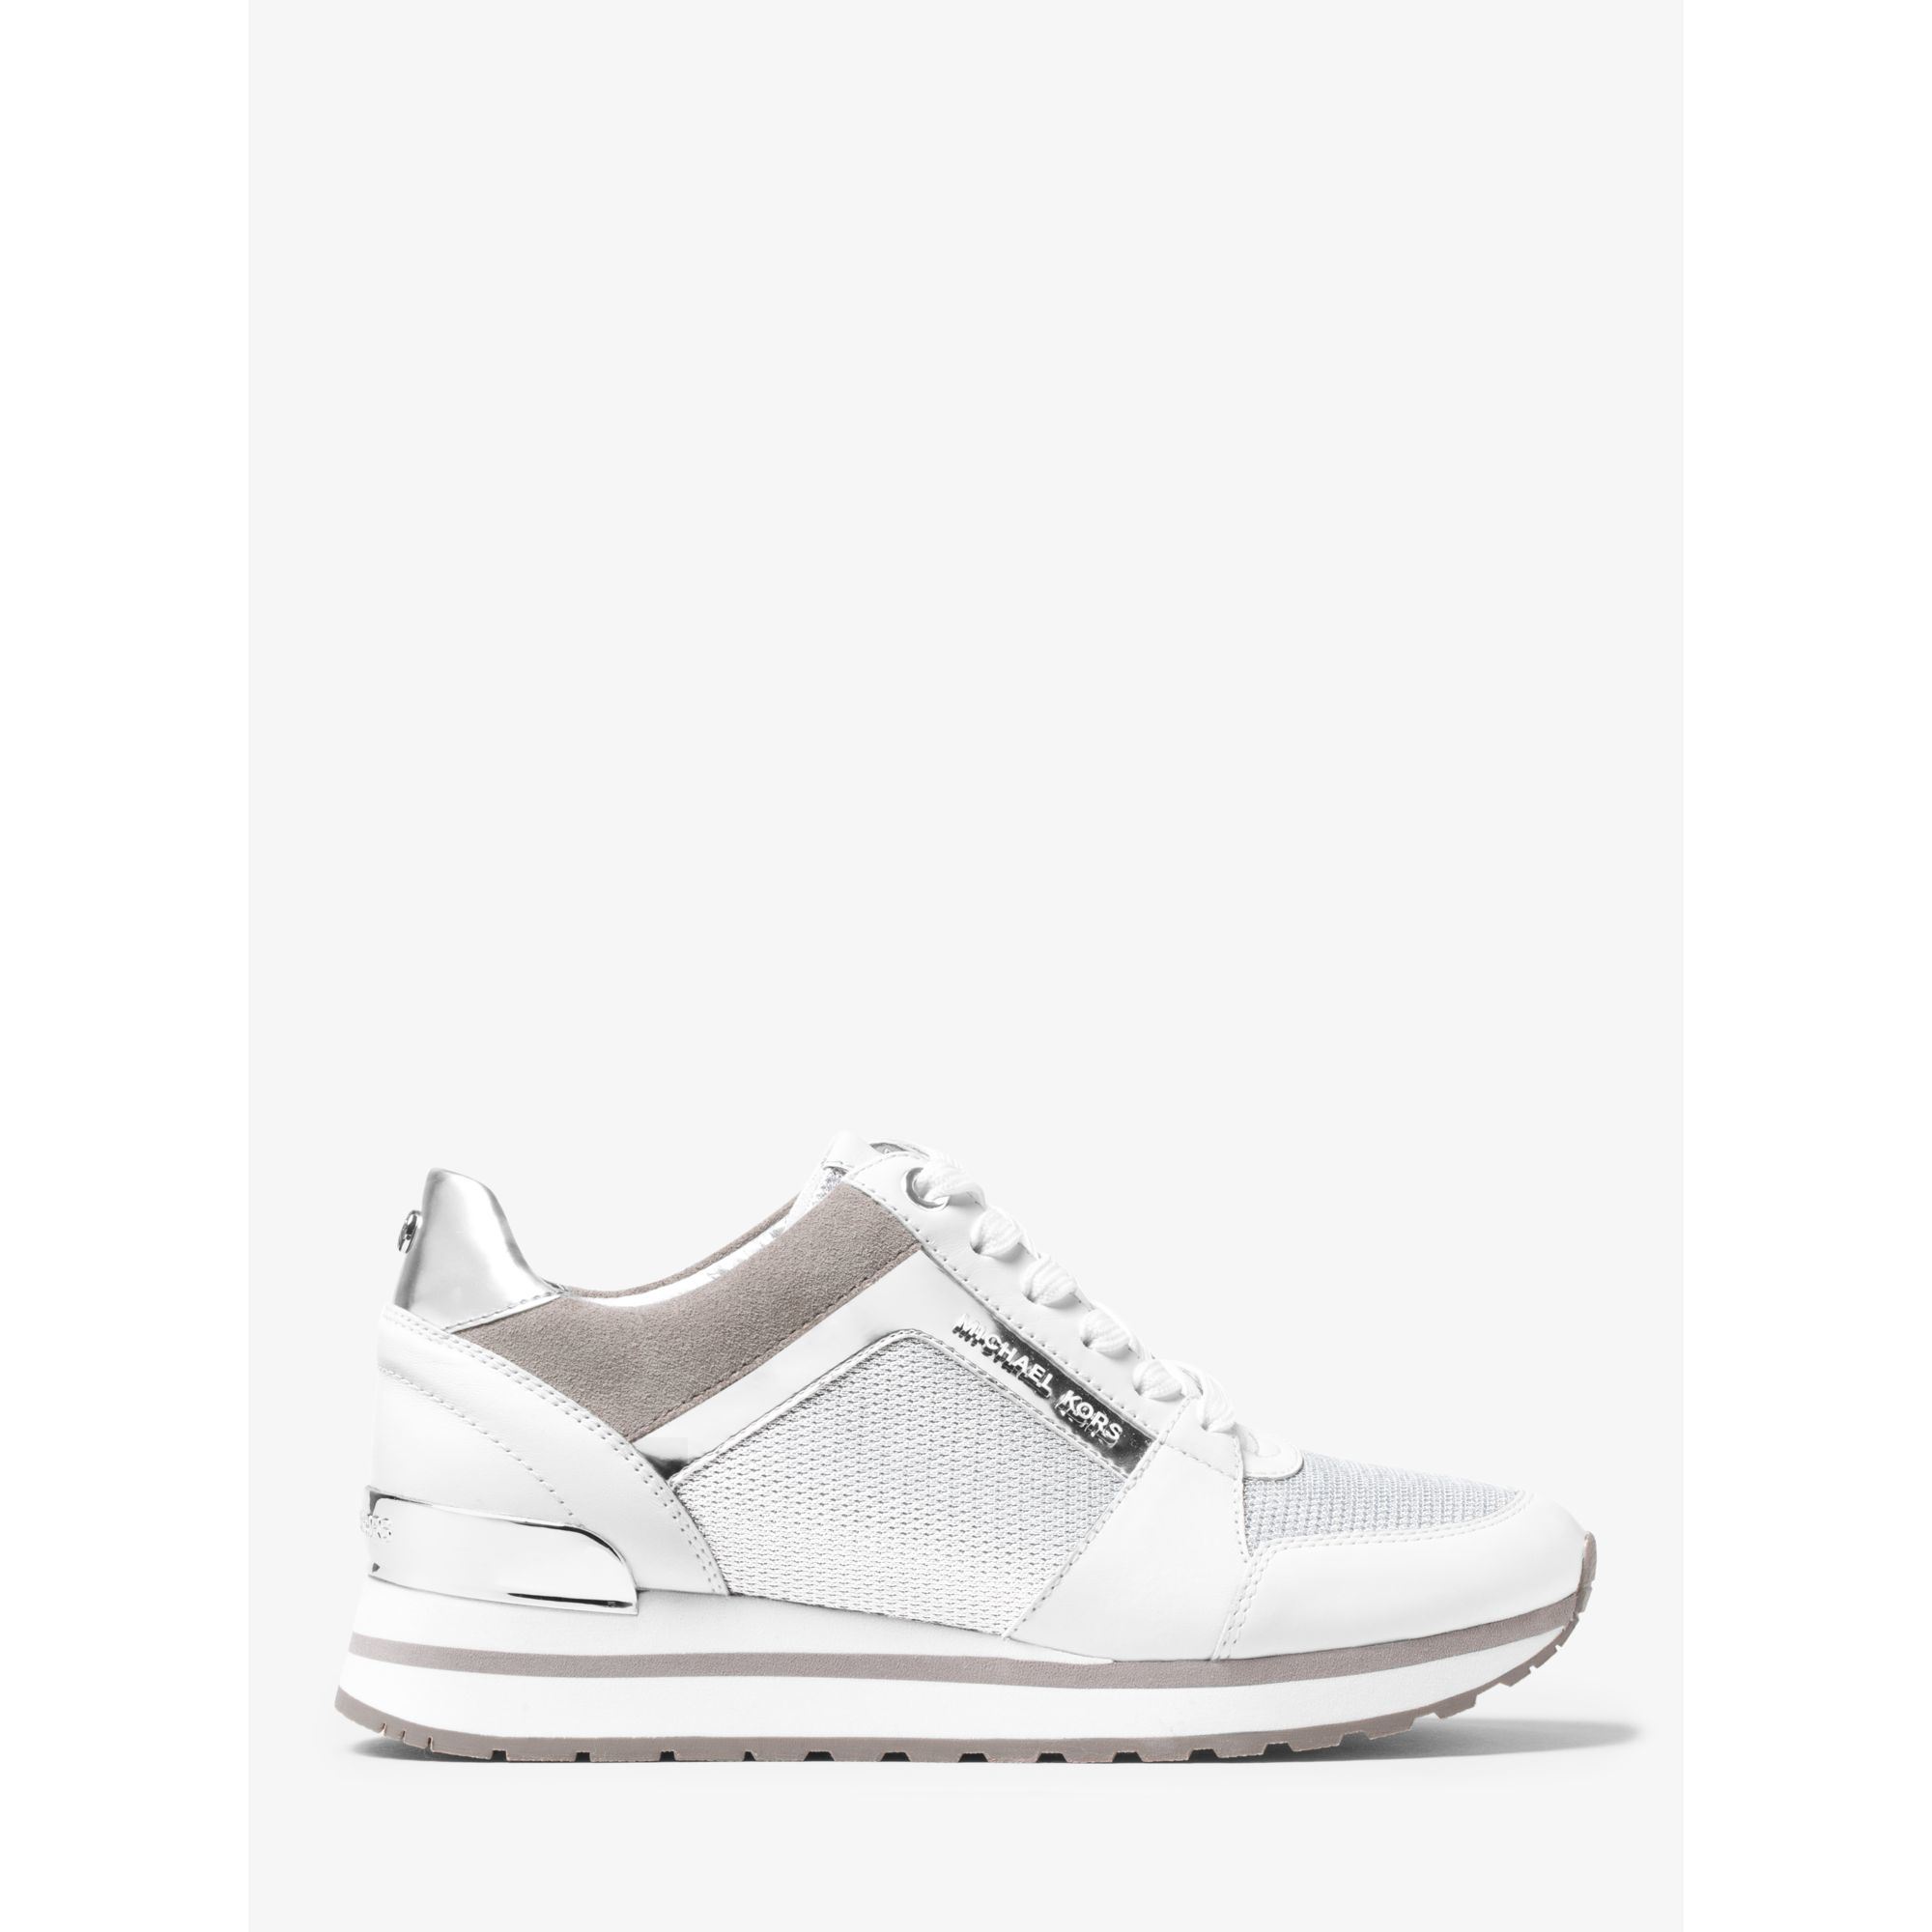 32c17a39f61a Lyst - Michael Kors Billie Mesh And Leather Sneaker in White